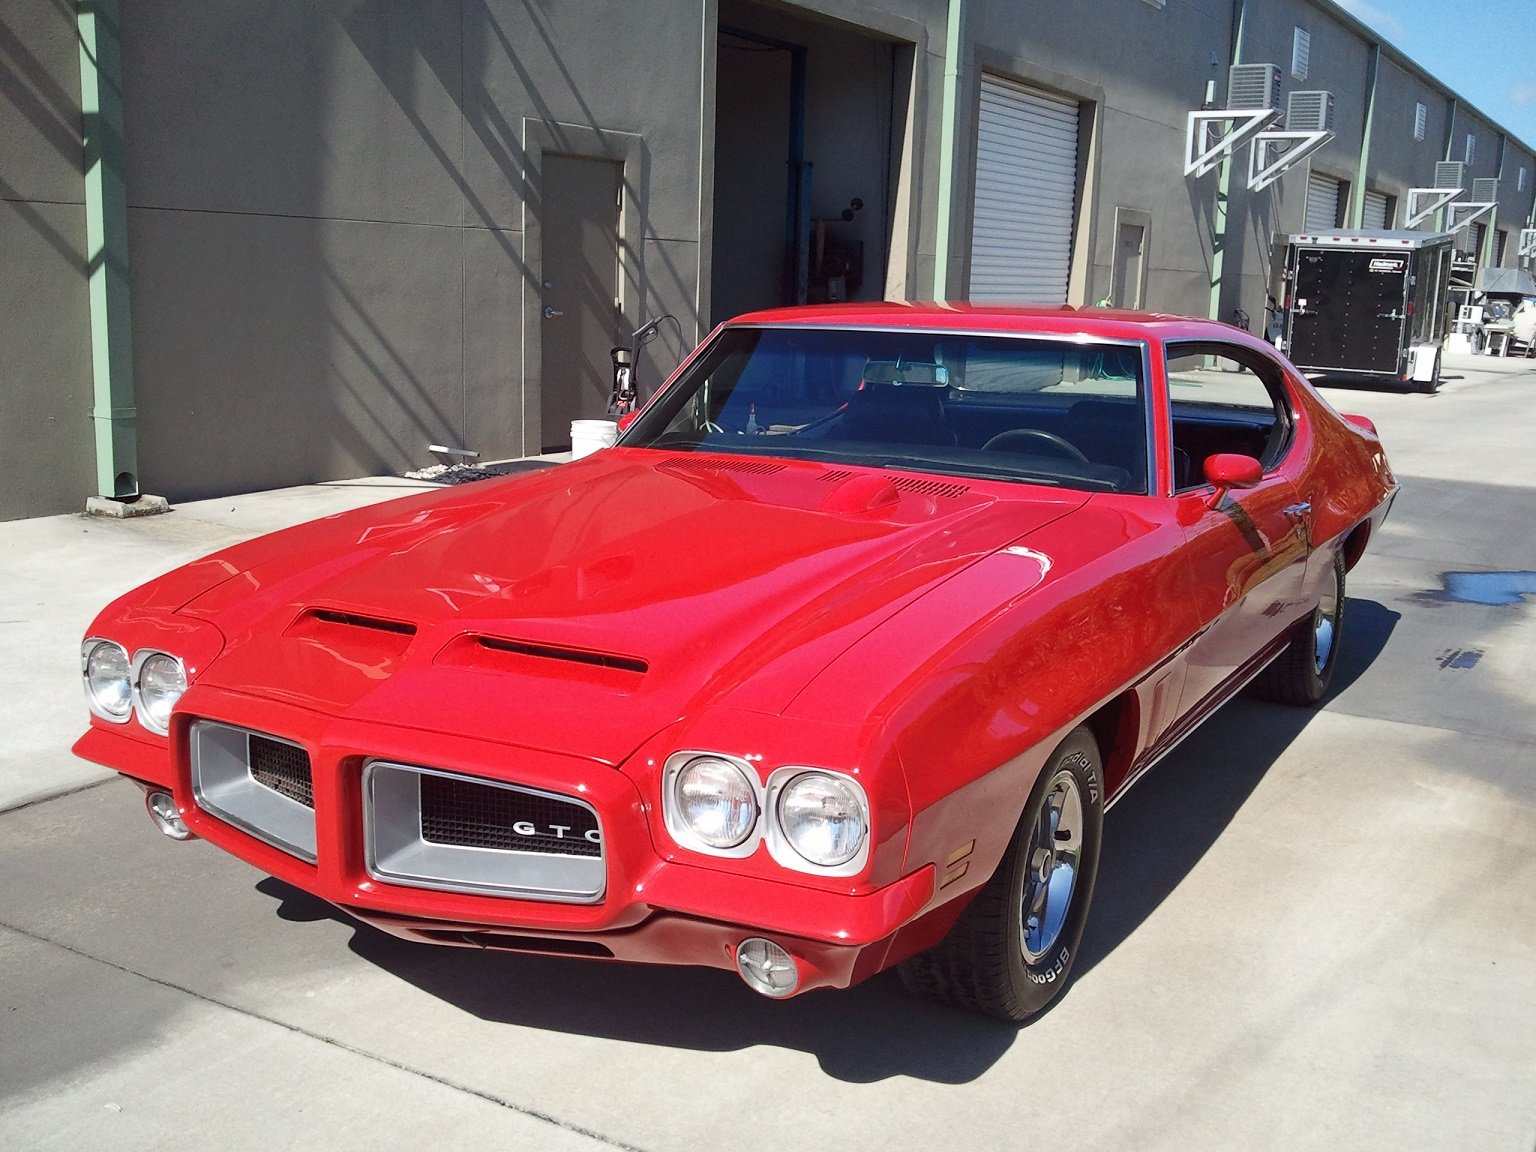 1972 Pontiac GTO Coupe For Sale (picture 1 of 6)